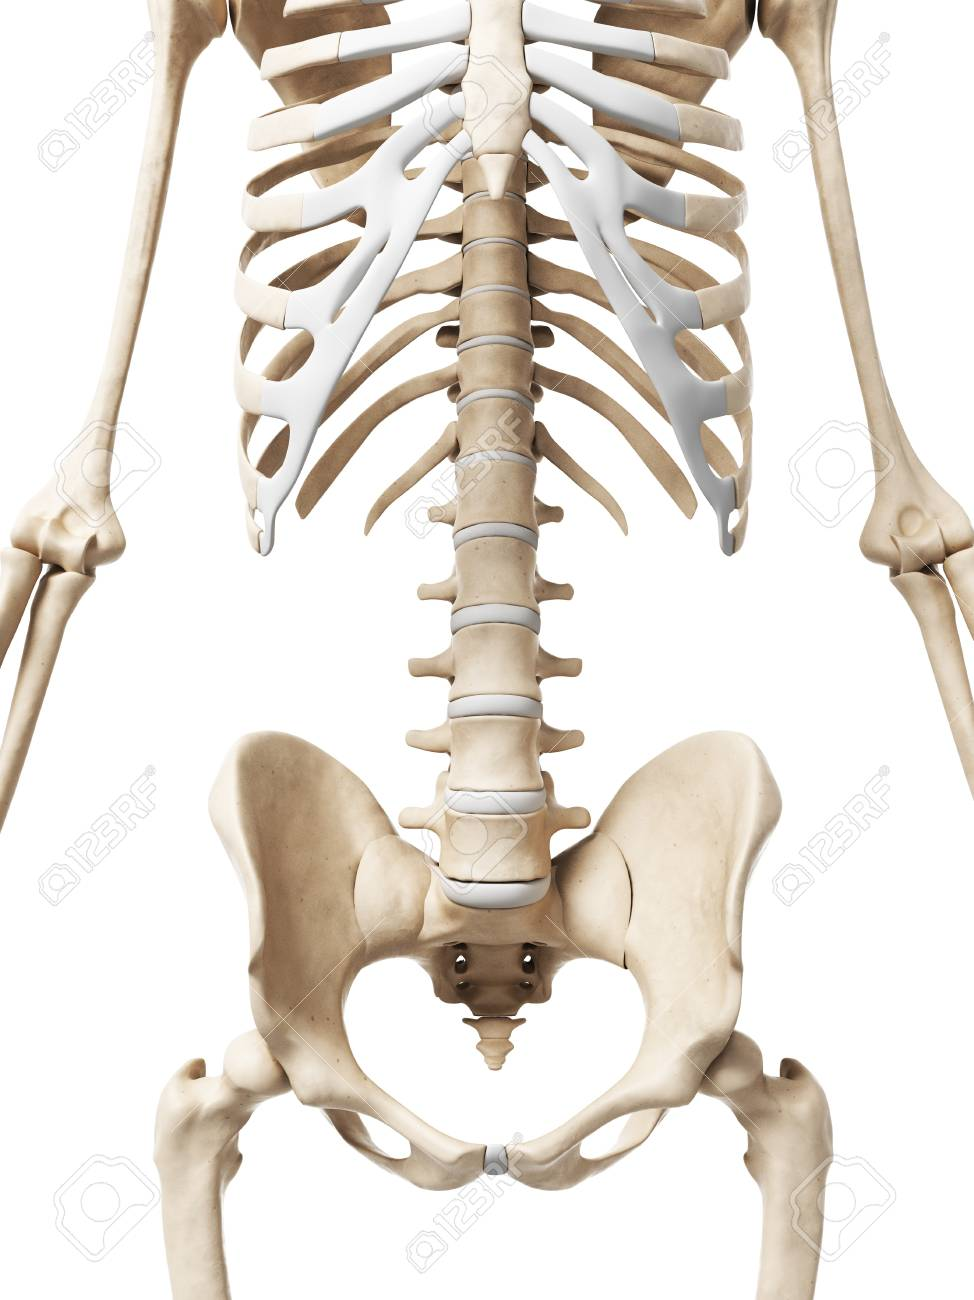 Human Pelvis, Computer Artwork Stock Photo, Picture And Royalty Free ...